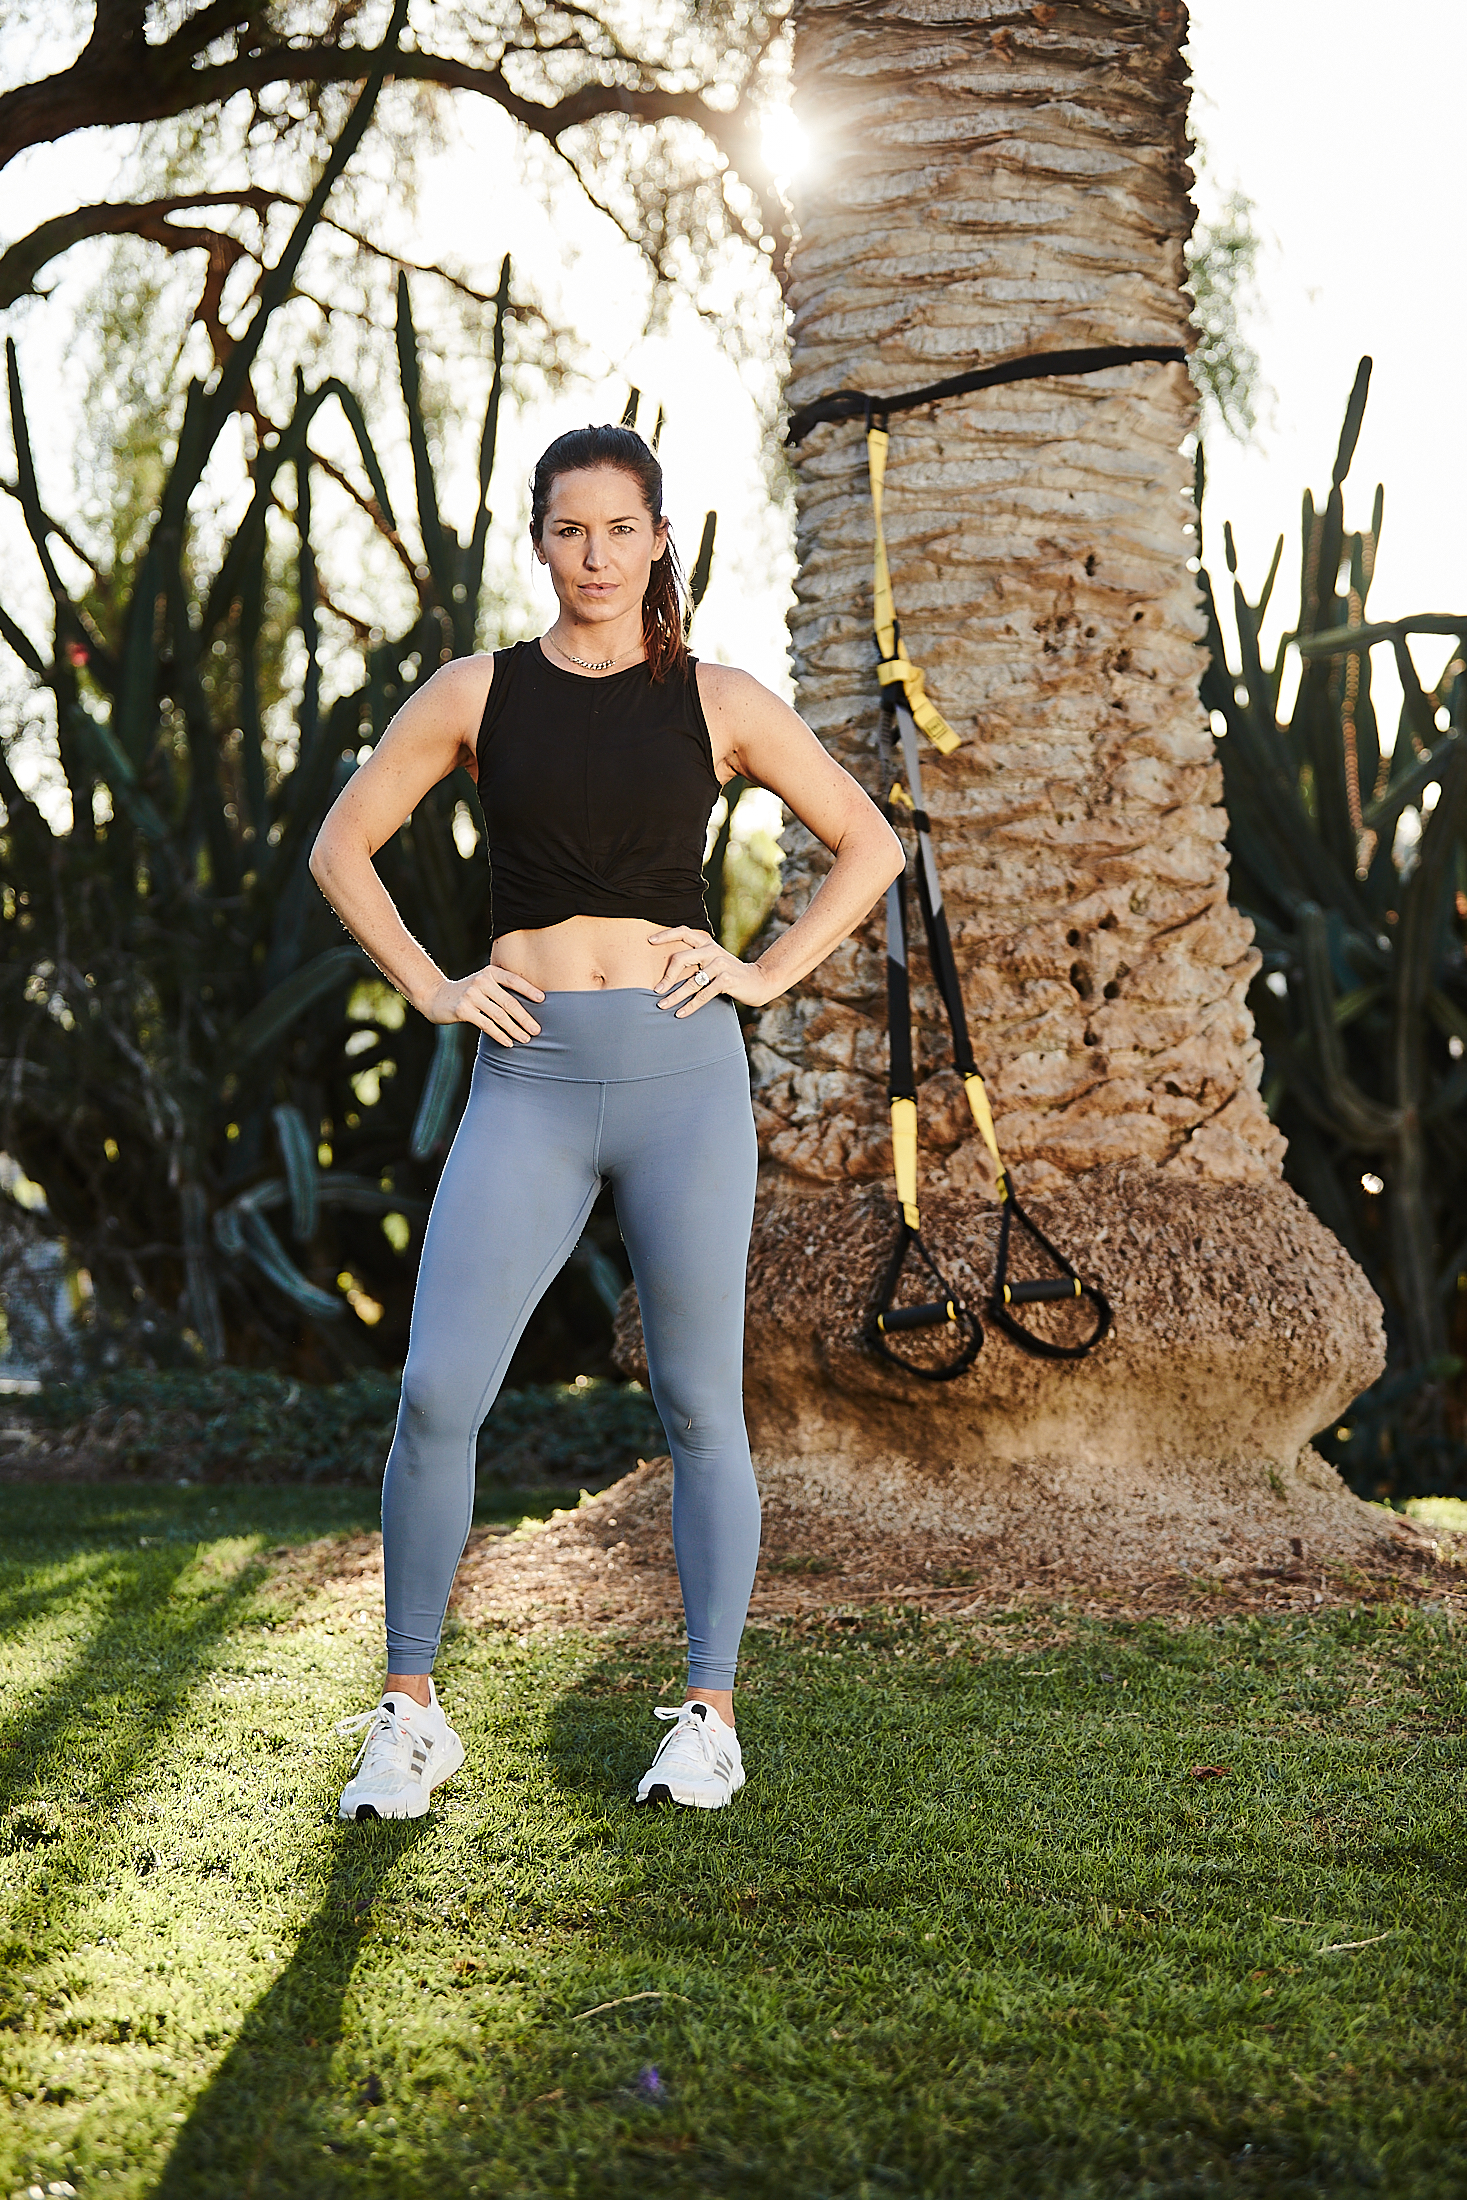 Kristin Leffel, wearing a black crop top and grey leggings, stands in front of a palm tree. Her TRX Suspension Trainer is hanging on the tree behind her.